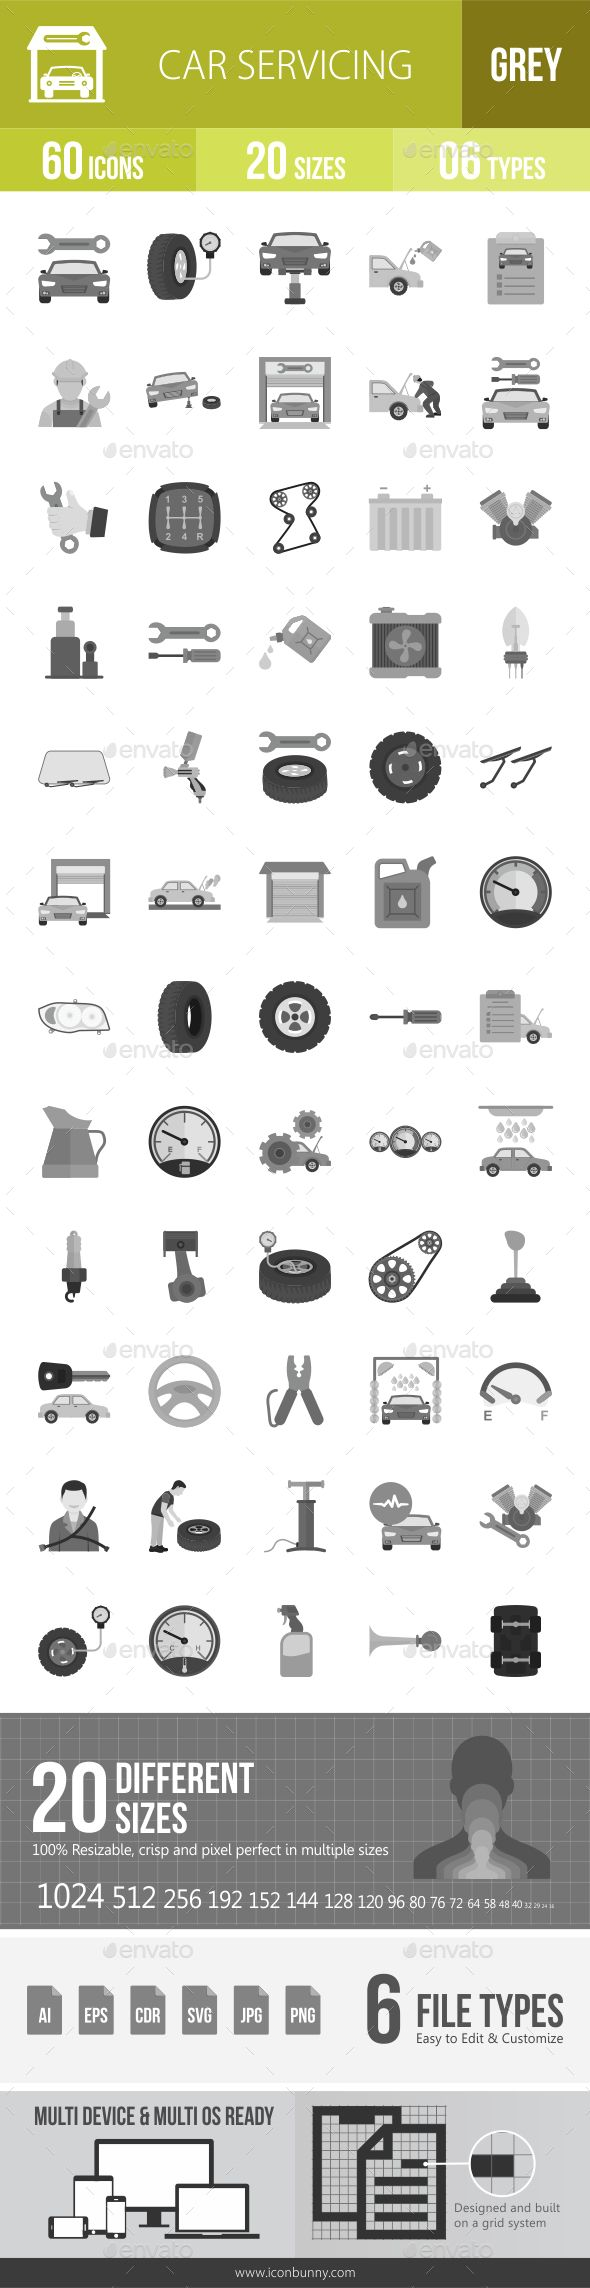 Car Servicing Greyscale Icons